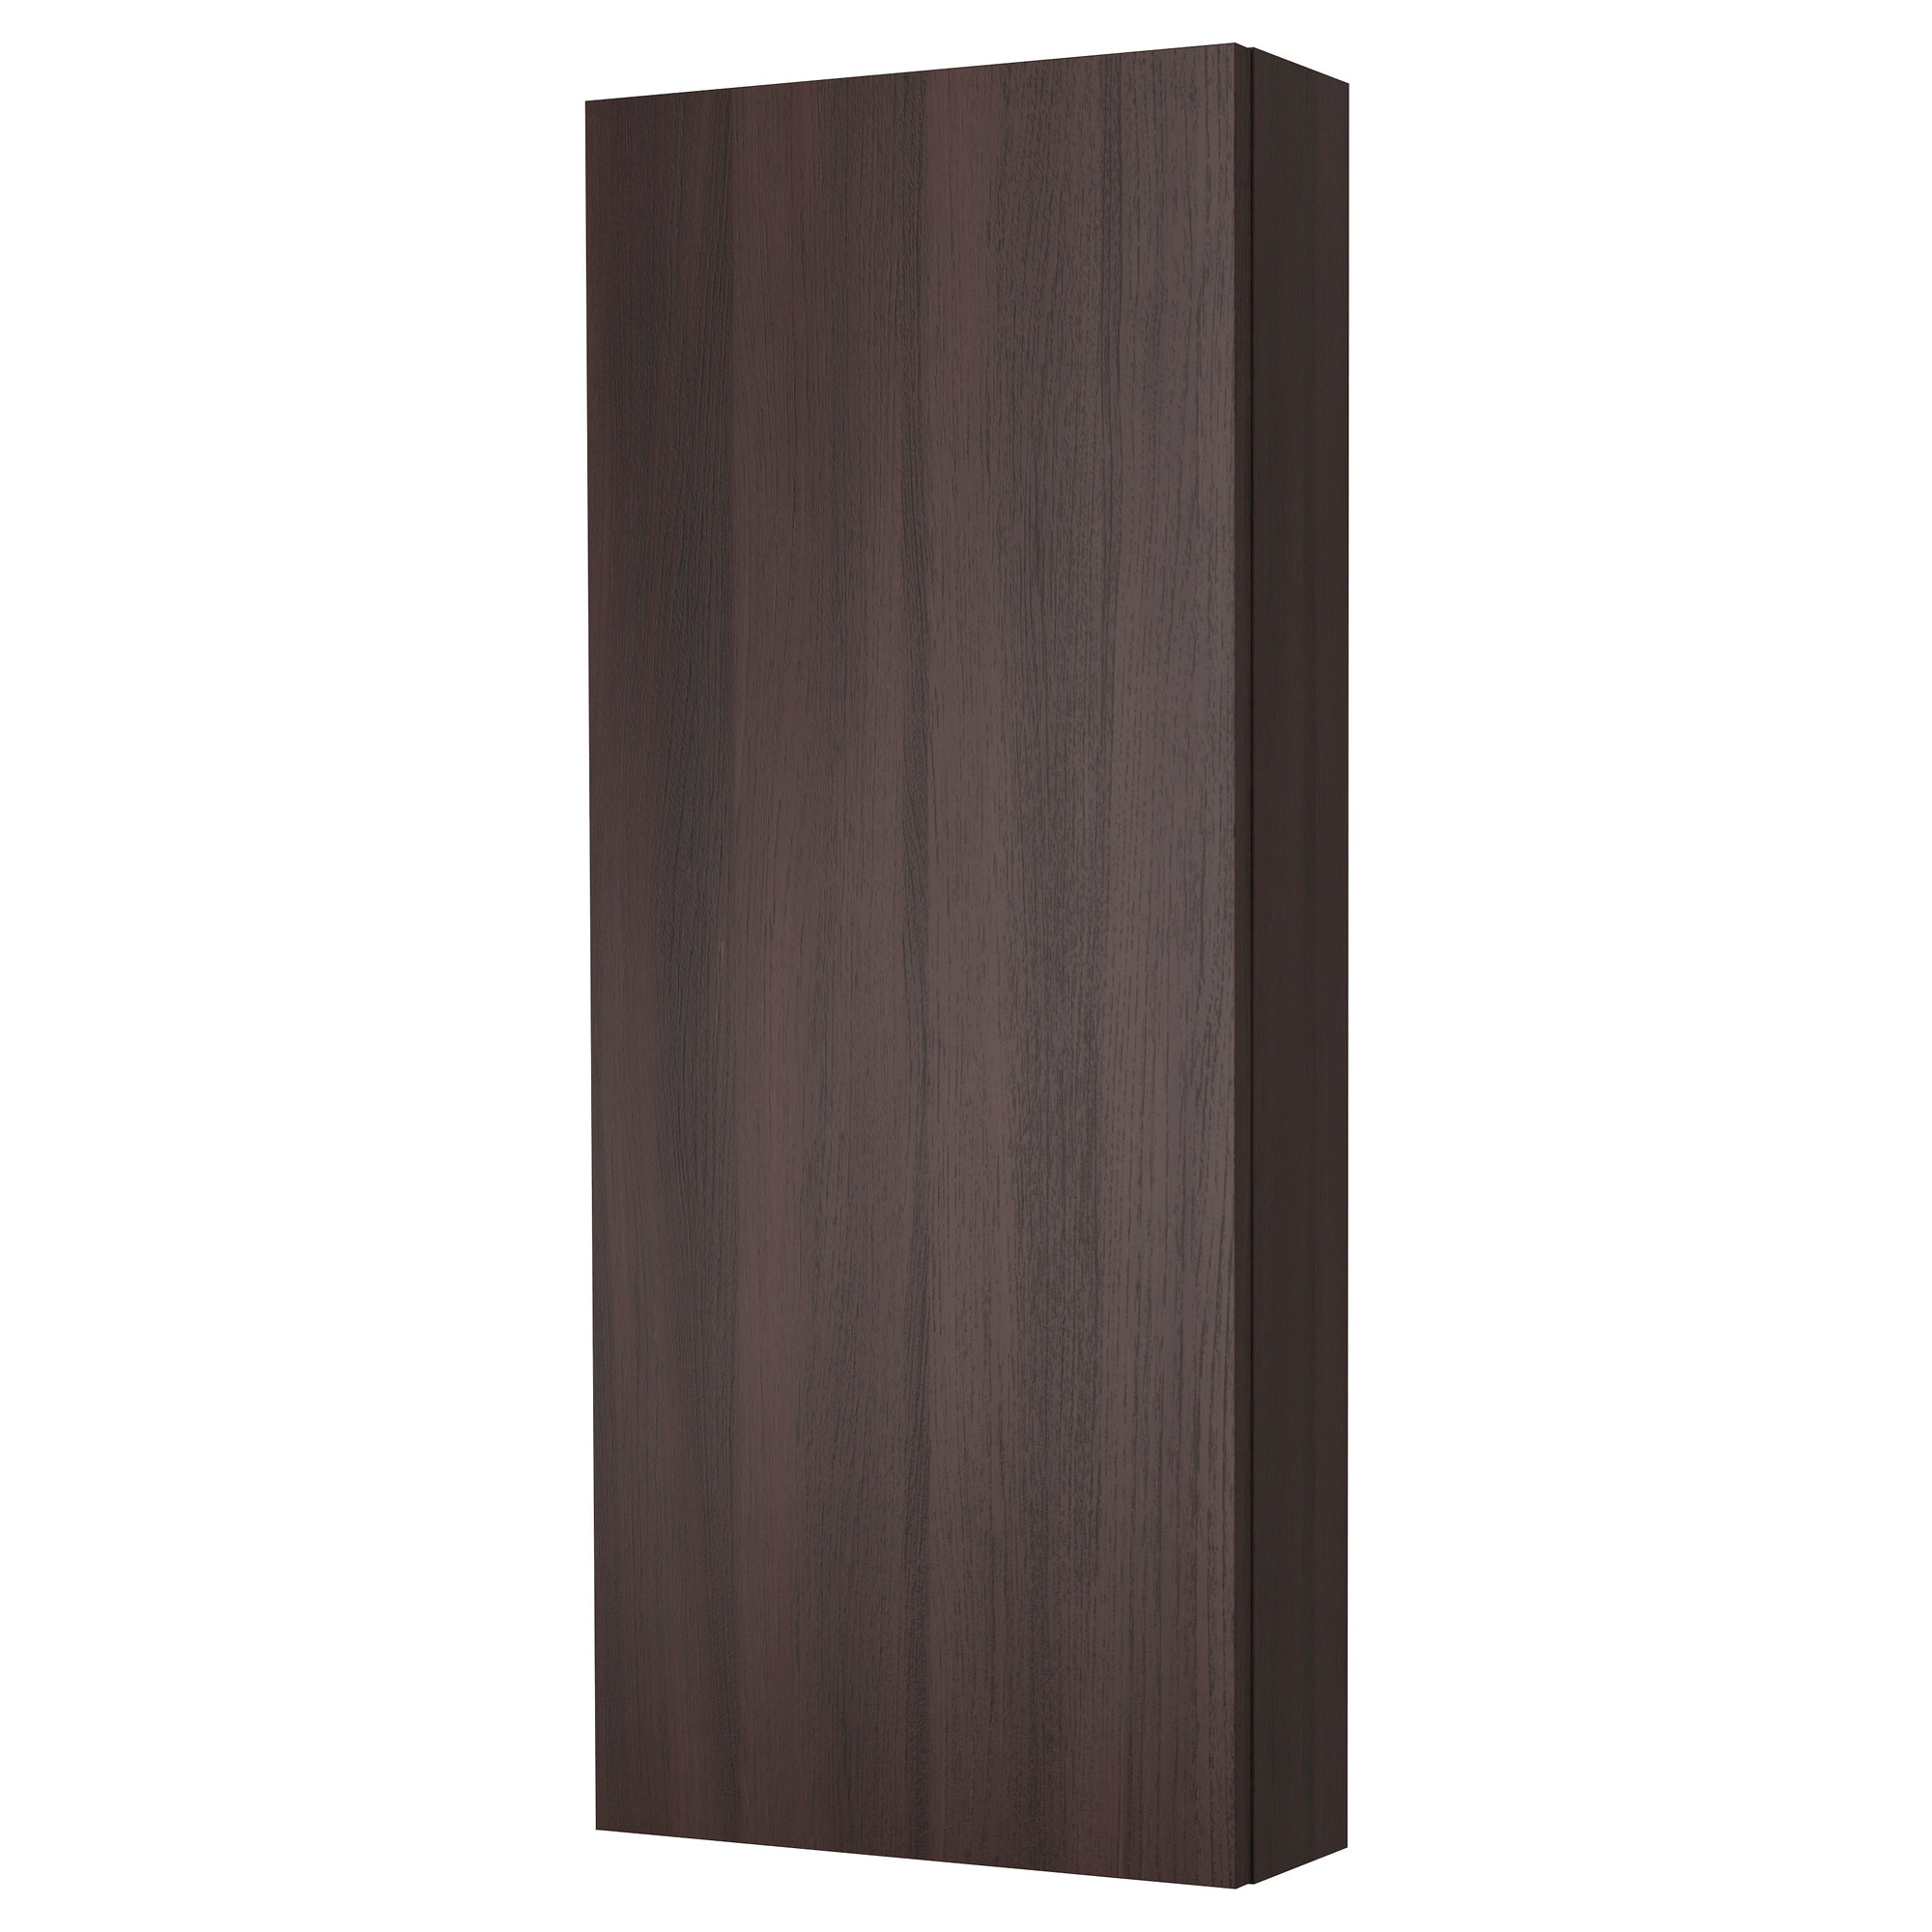 Godmorgon Wall Cabinet With 1 Door, Blackbrown Blackbrown Width: 15